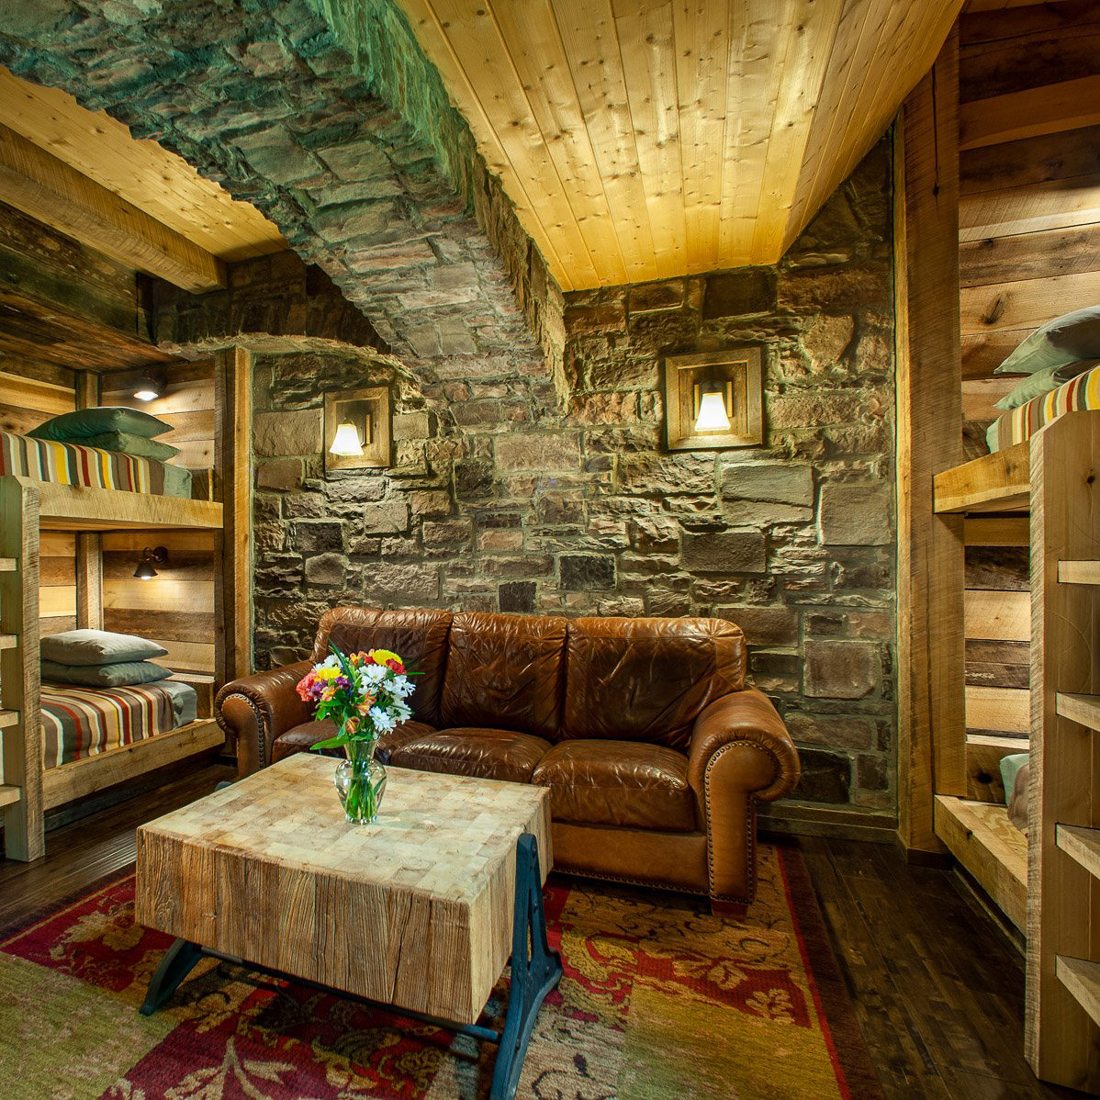 The Bunkhouse Suite